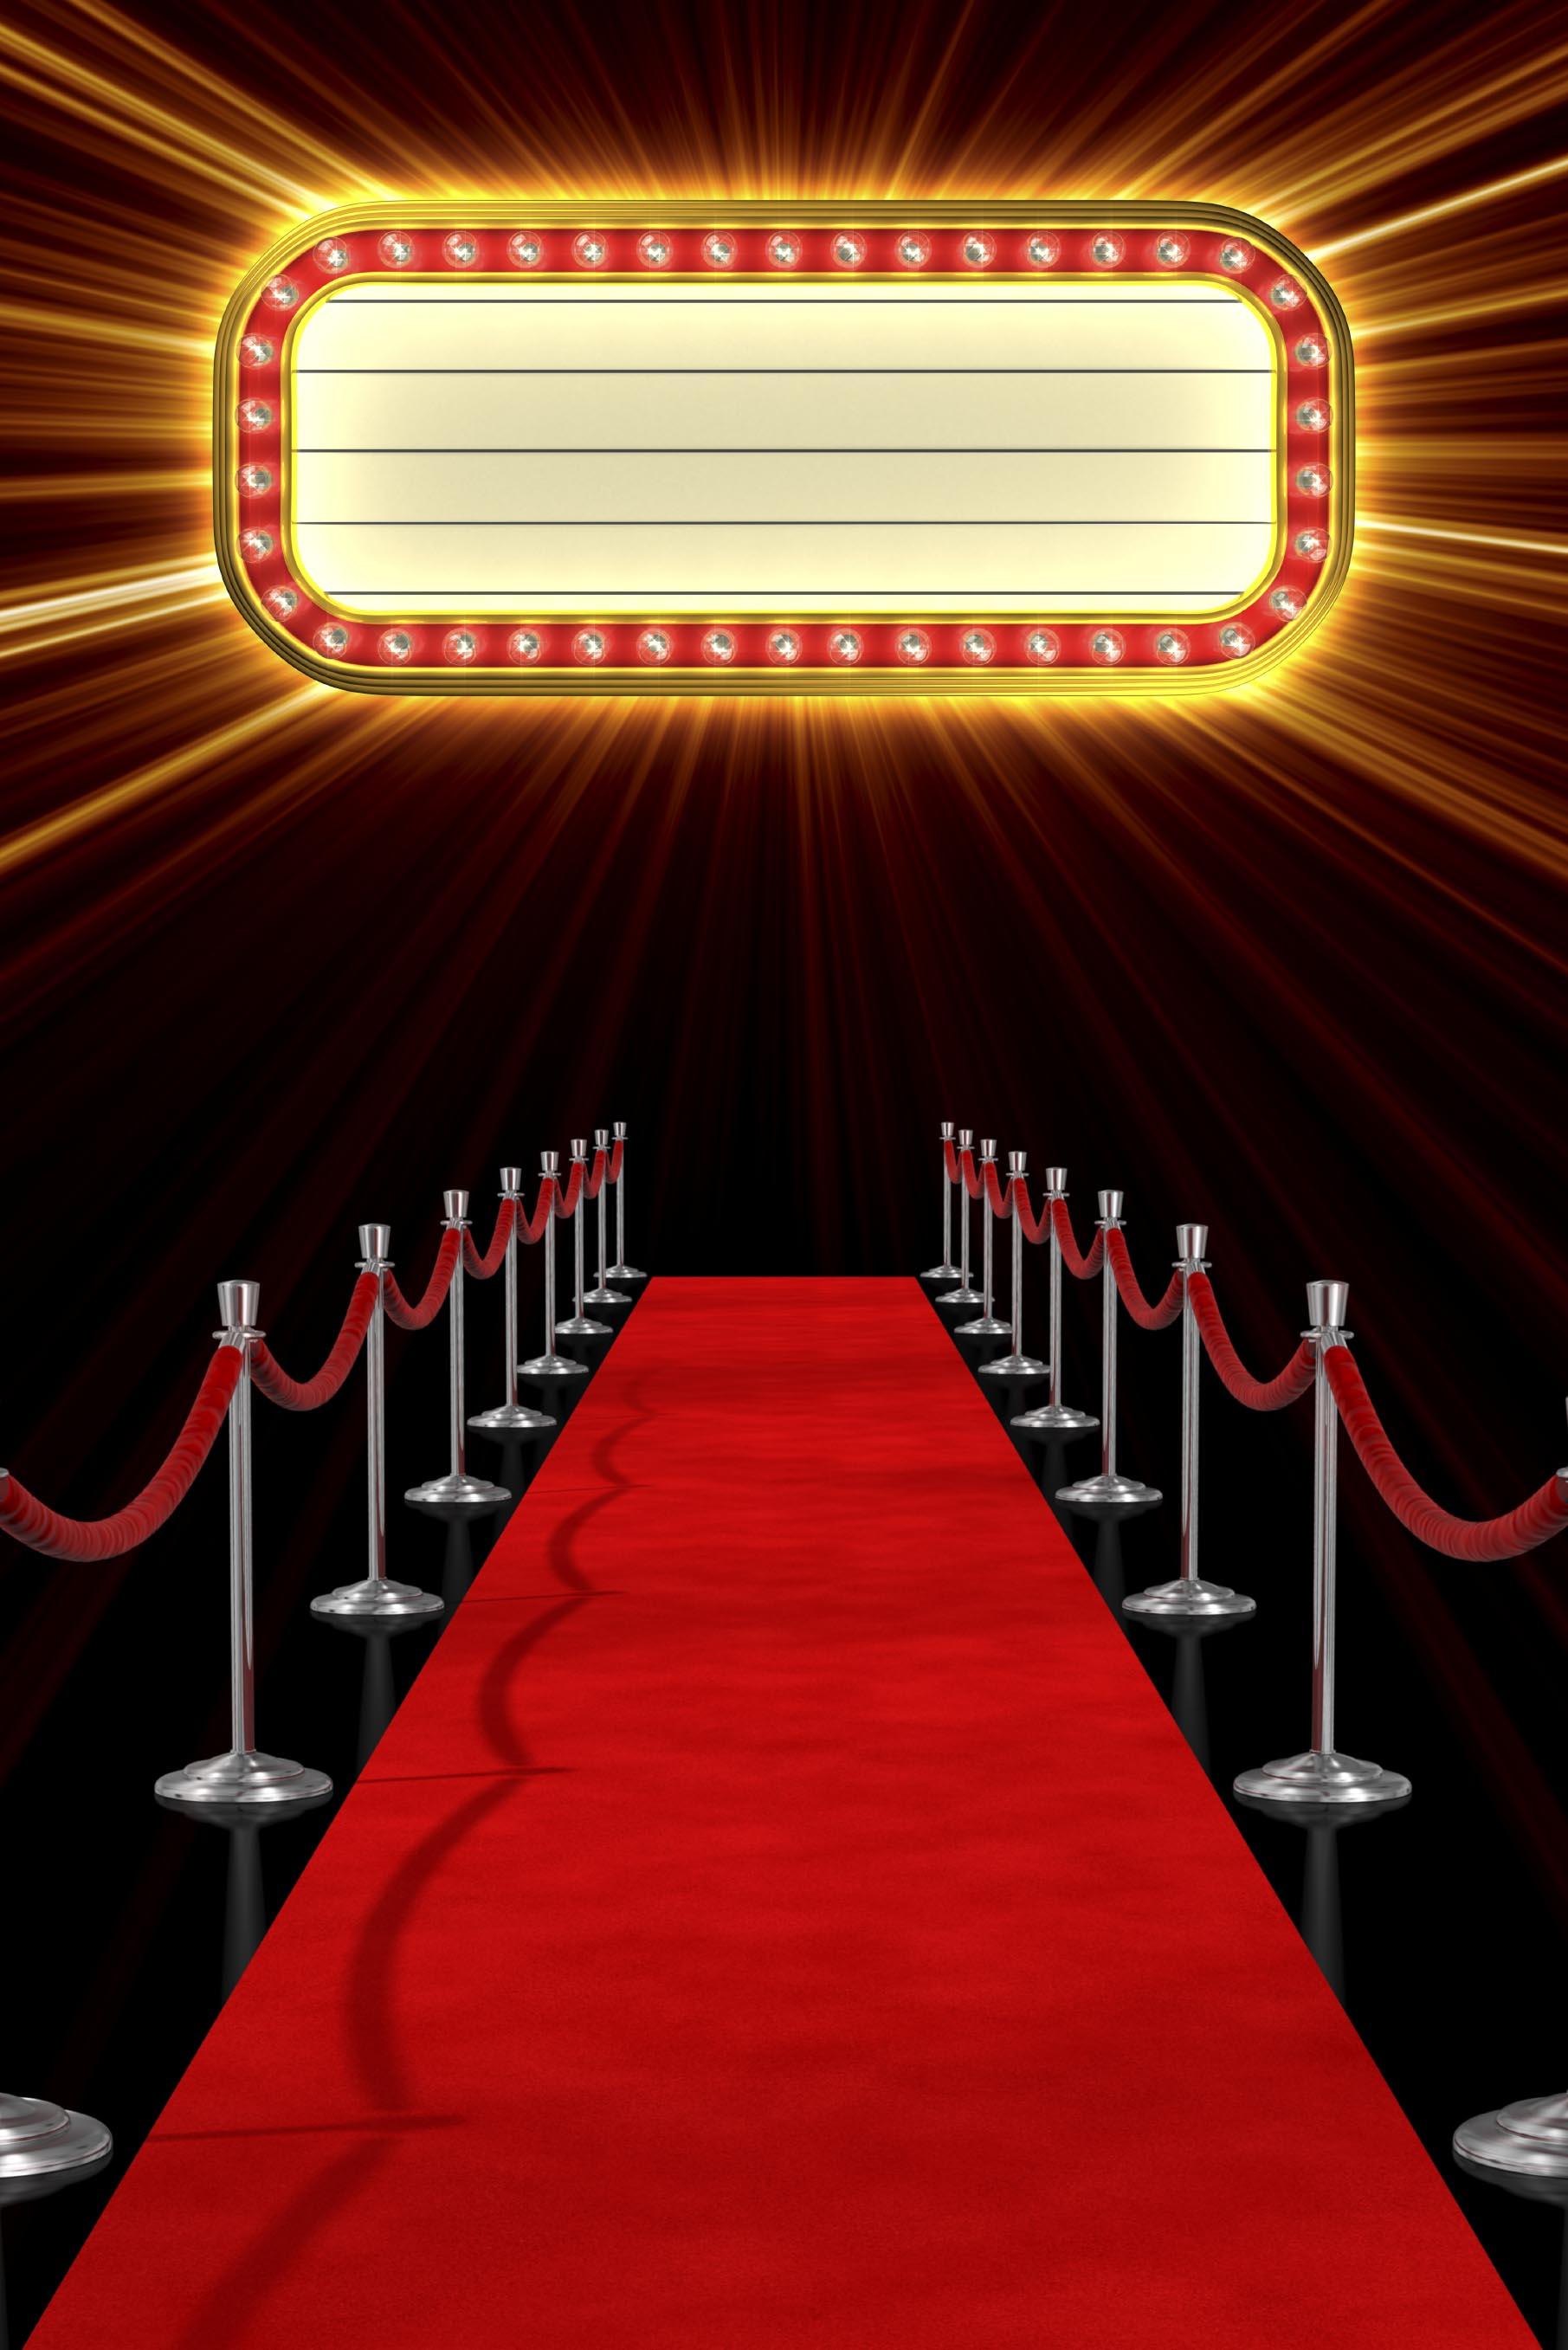 Atlanta Hollywood Red Carpet Marquee Background 1811x2714